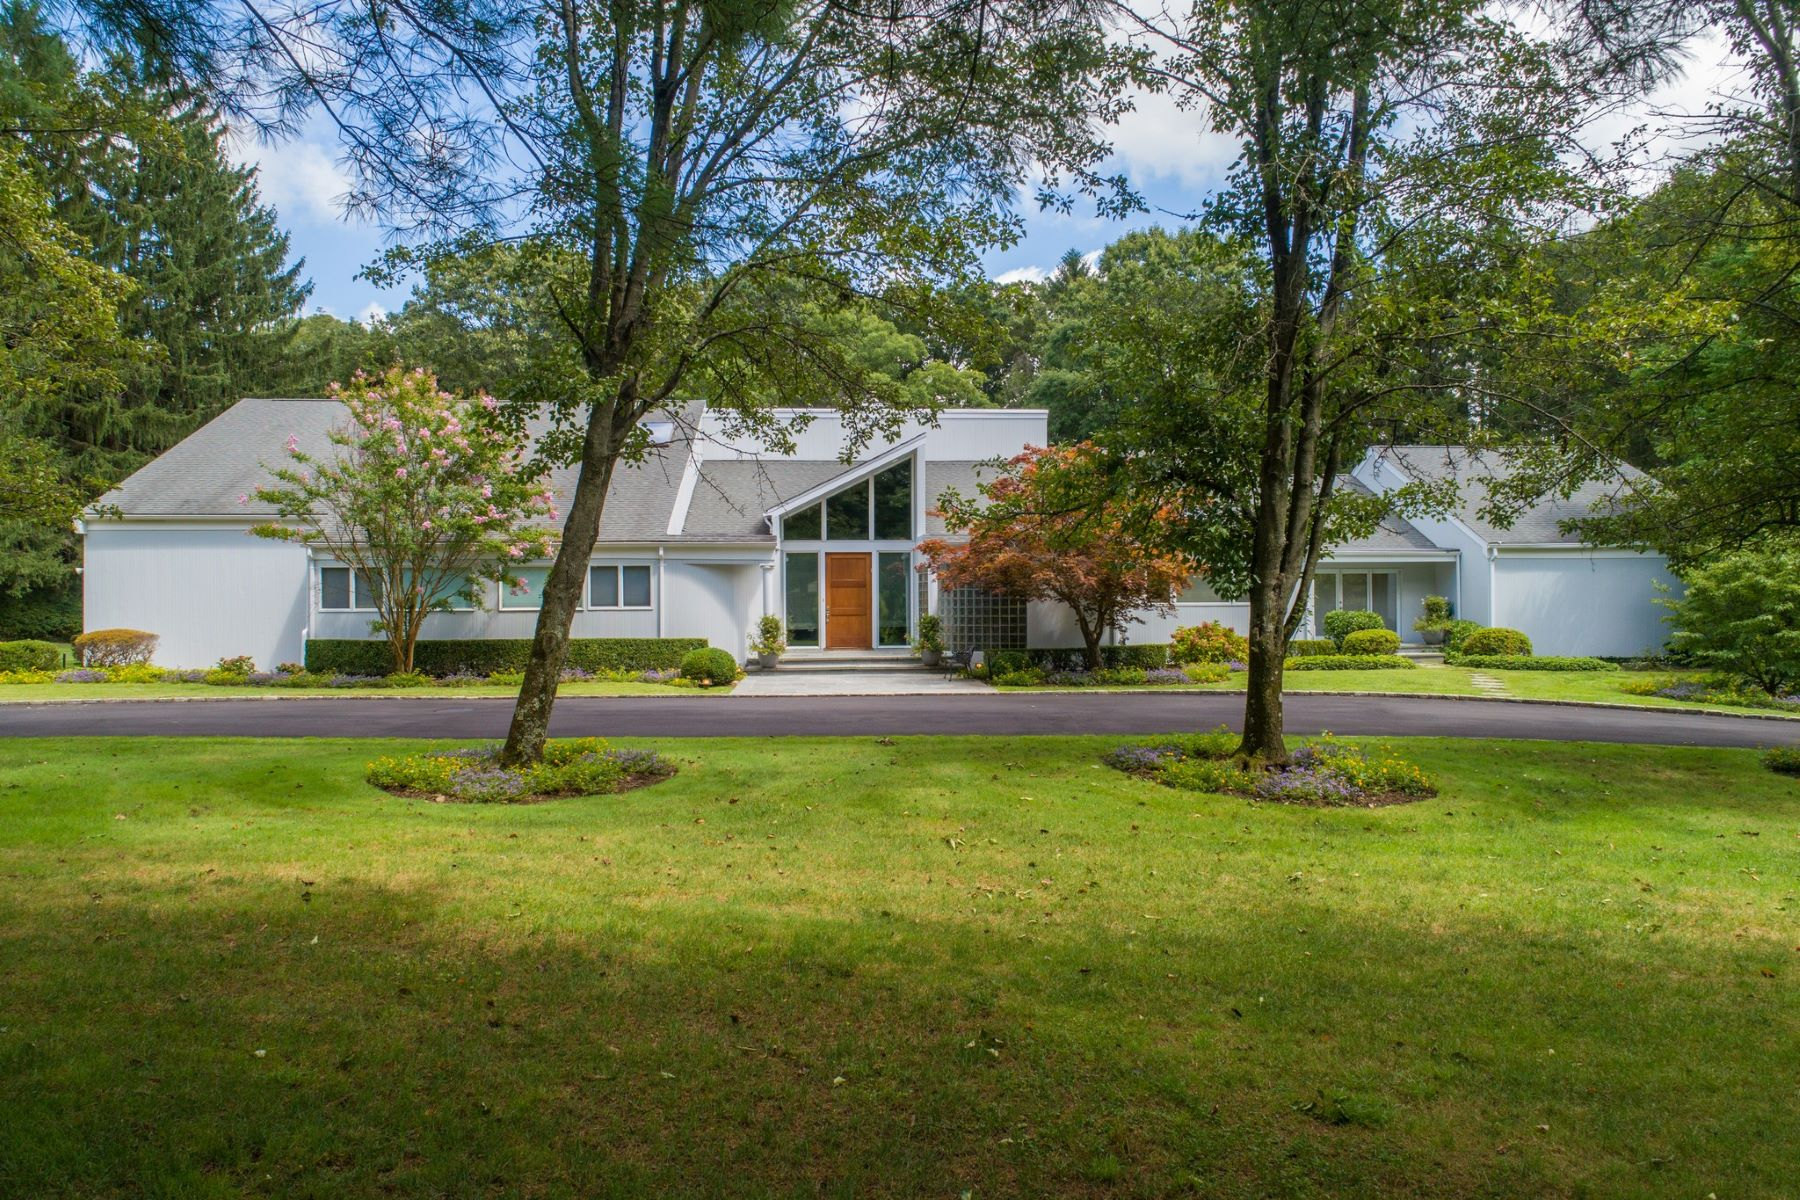 Single Family Homes for Sale at Old Westbury 49 Rolling Hill Lane Old Westbury, New York 11568 United States